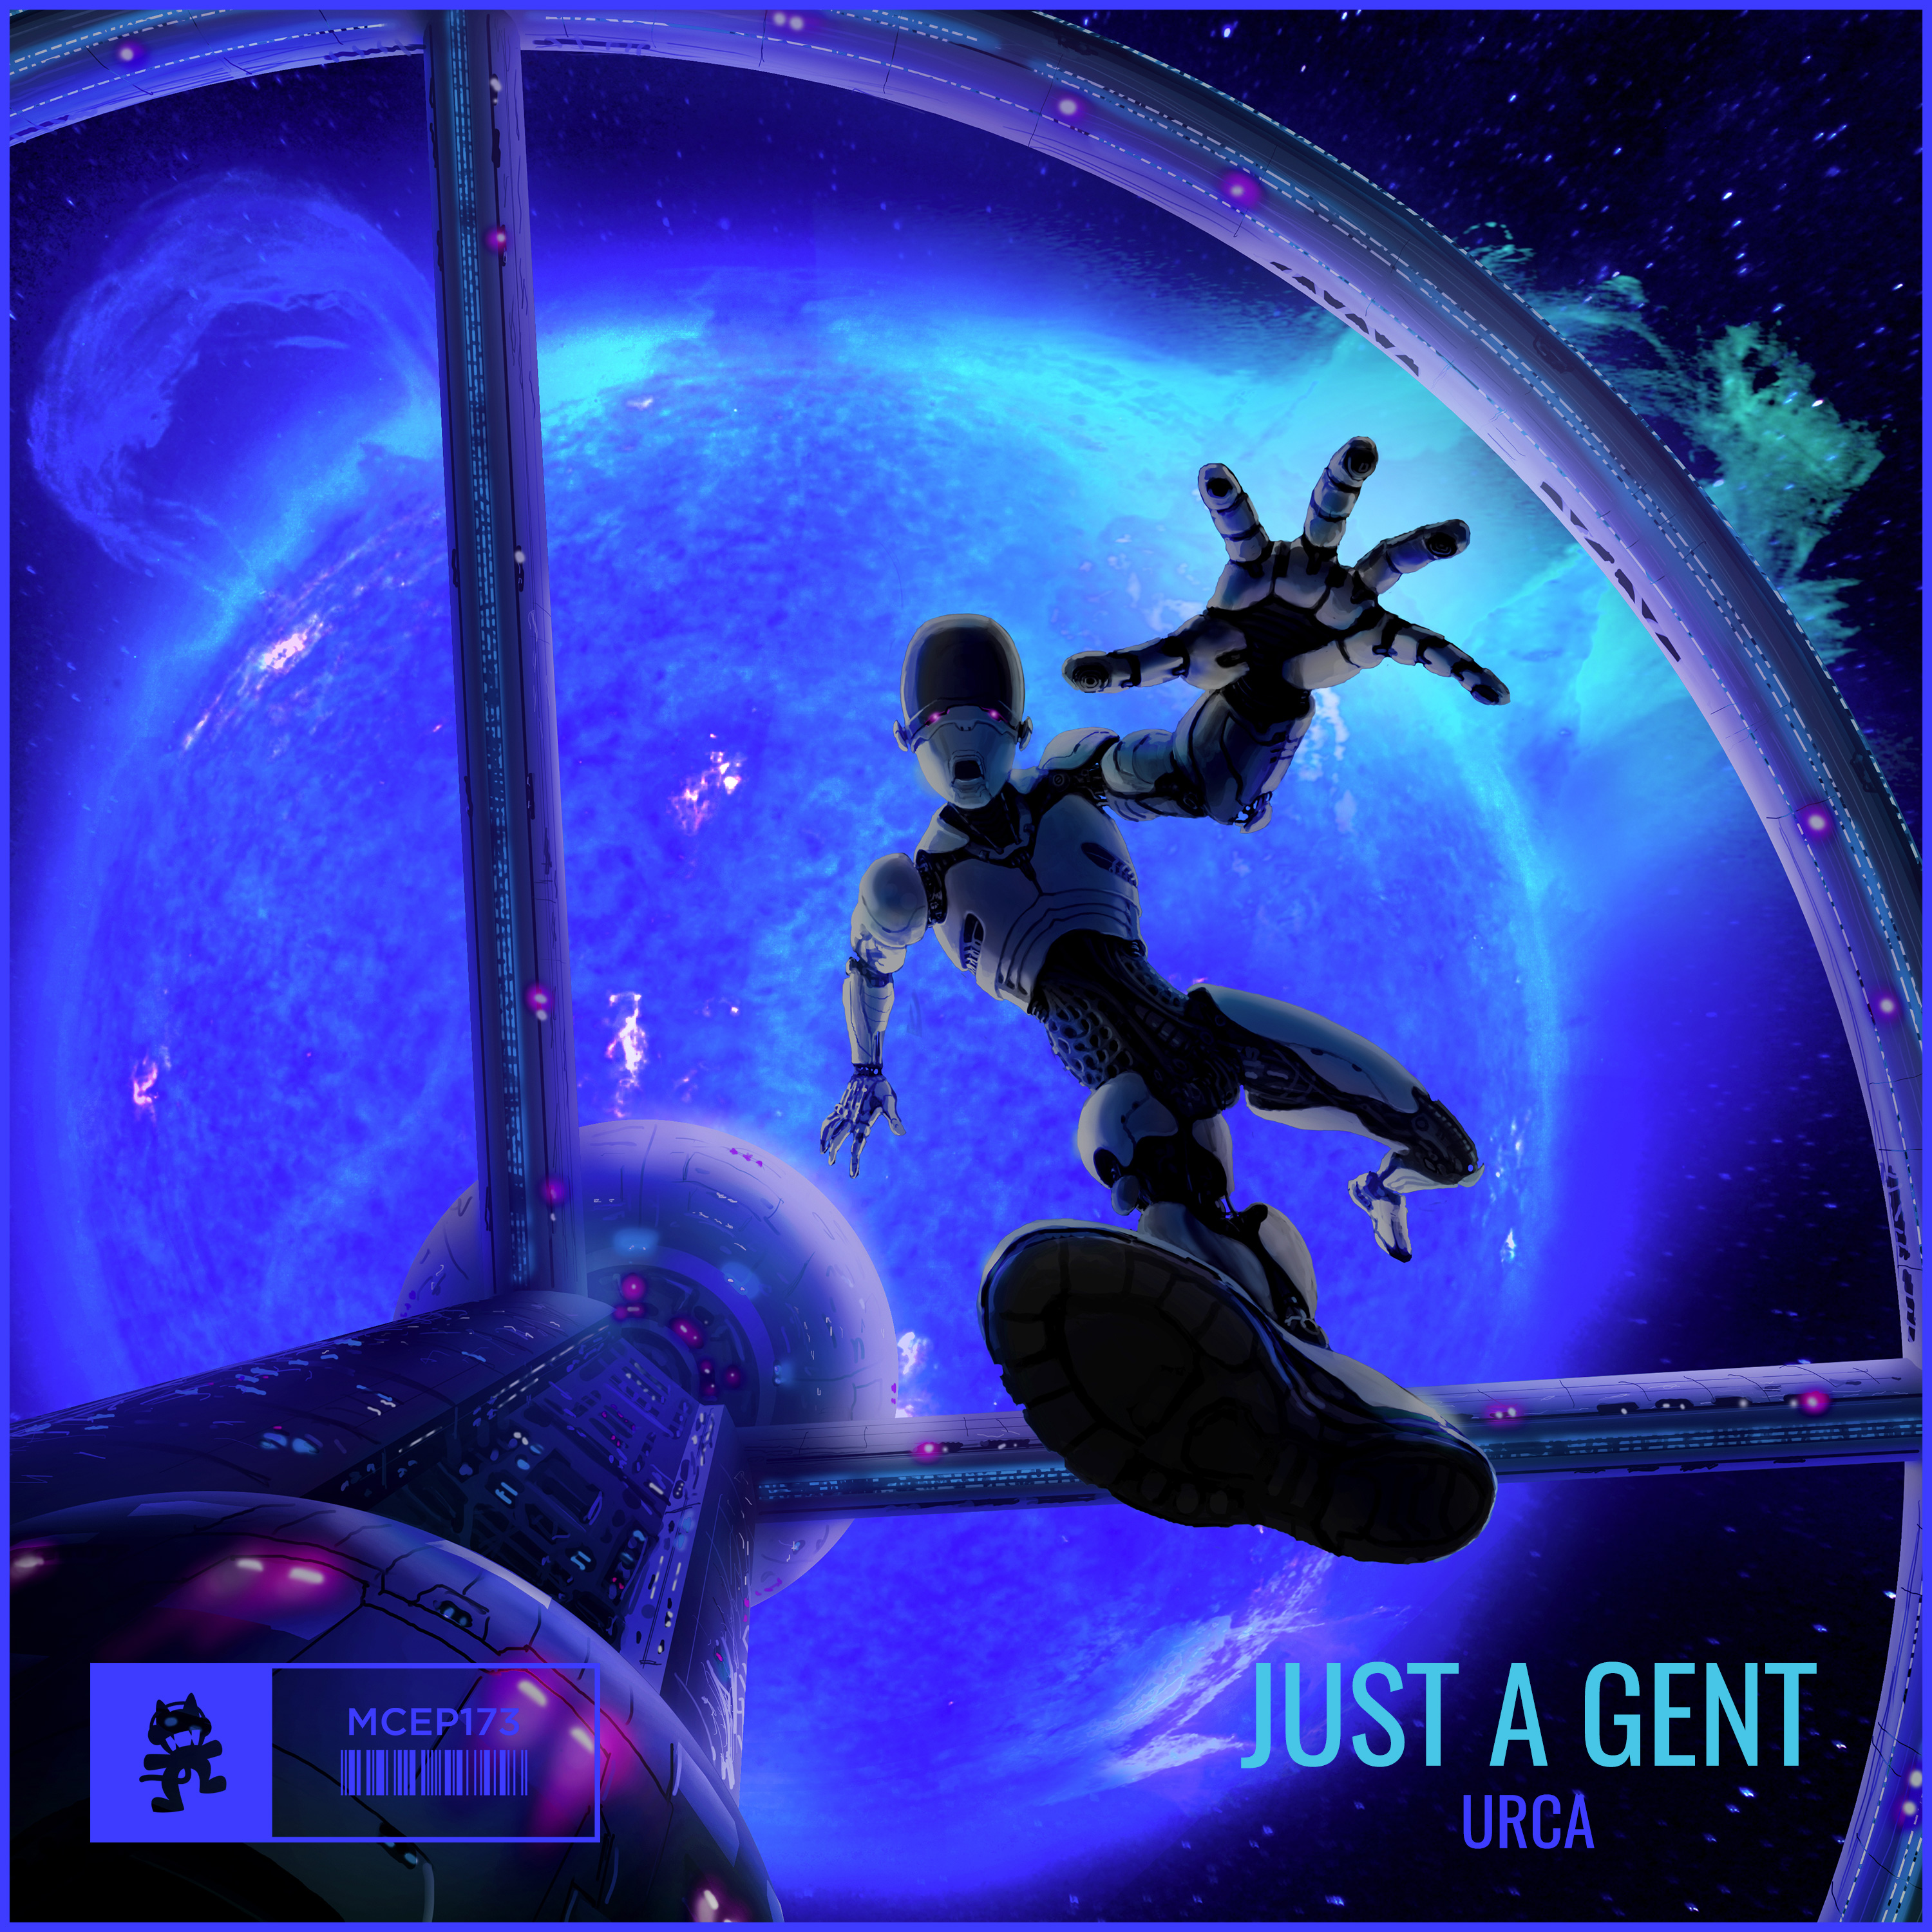 Just A Gent - URCA (Art)